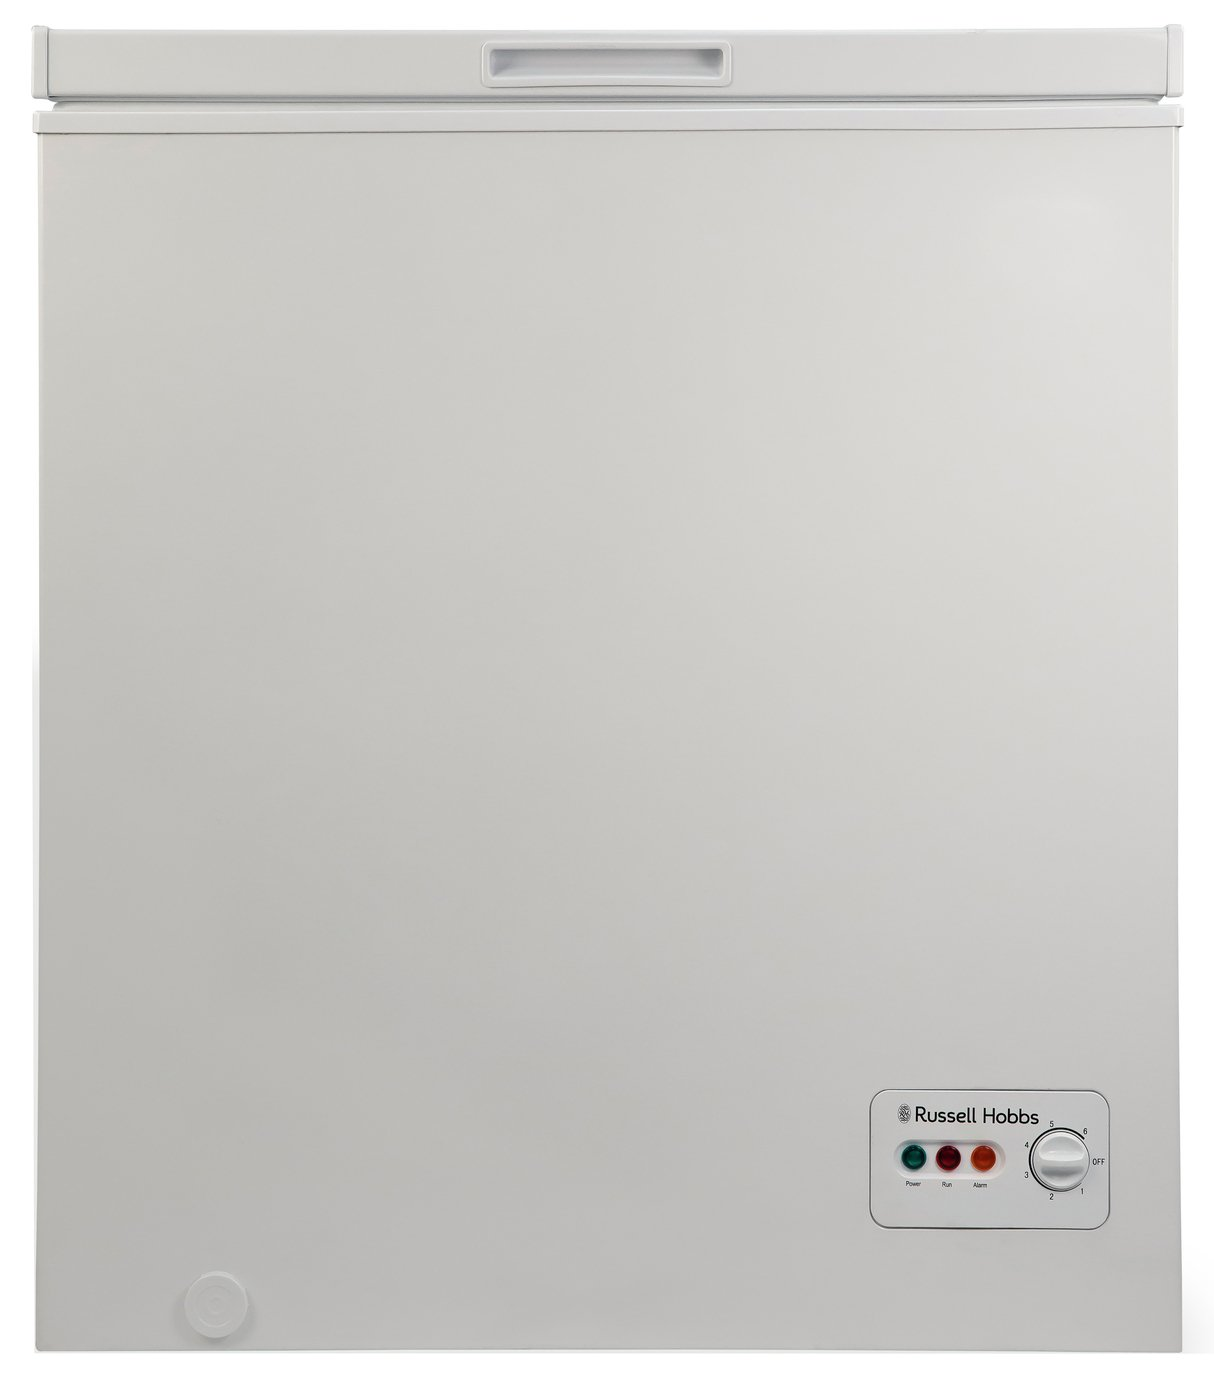 Russell Hobbs RHCF150 Chest Freezer - White Best Price, Cheapest Prices